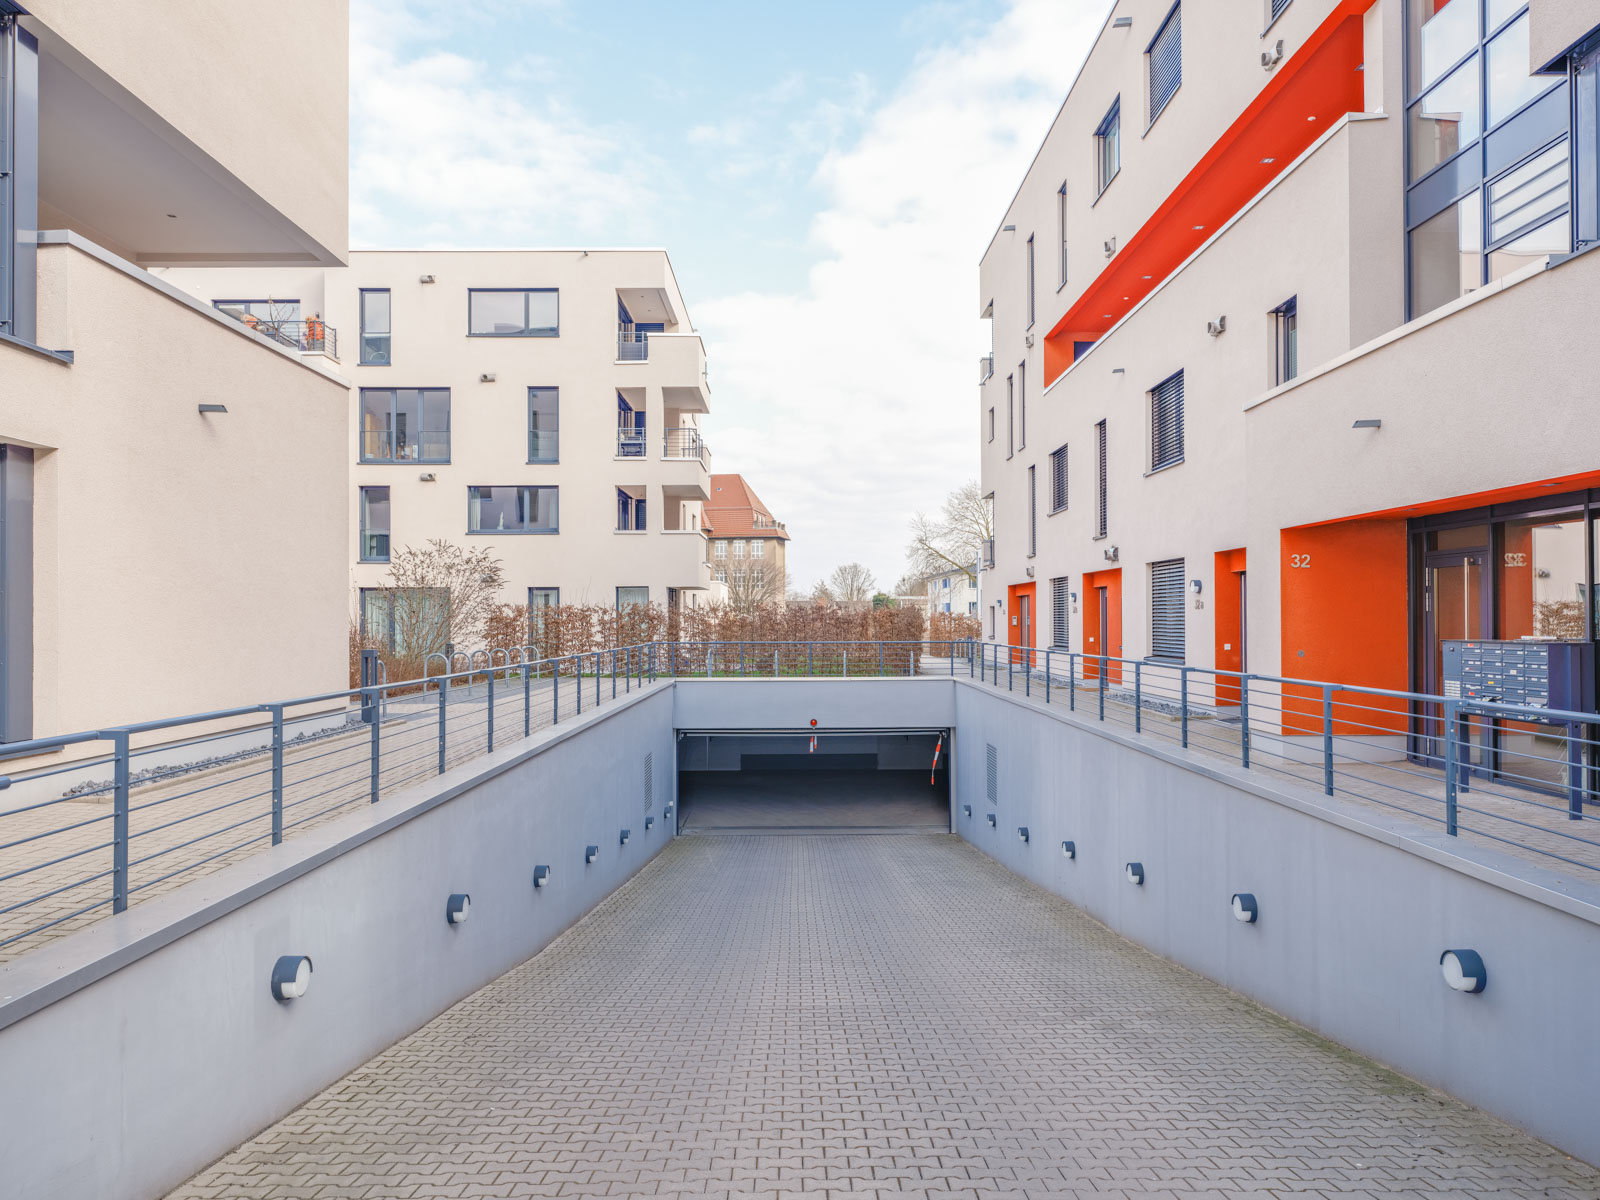 New housing estate with garage entrance on 'Walther-Rathenau-Straße' in March 2021 (Bielefeld, Germany).